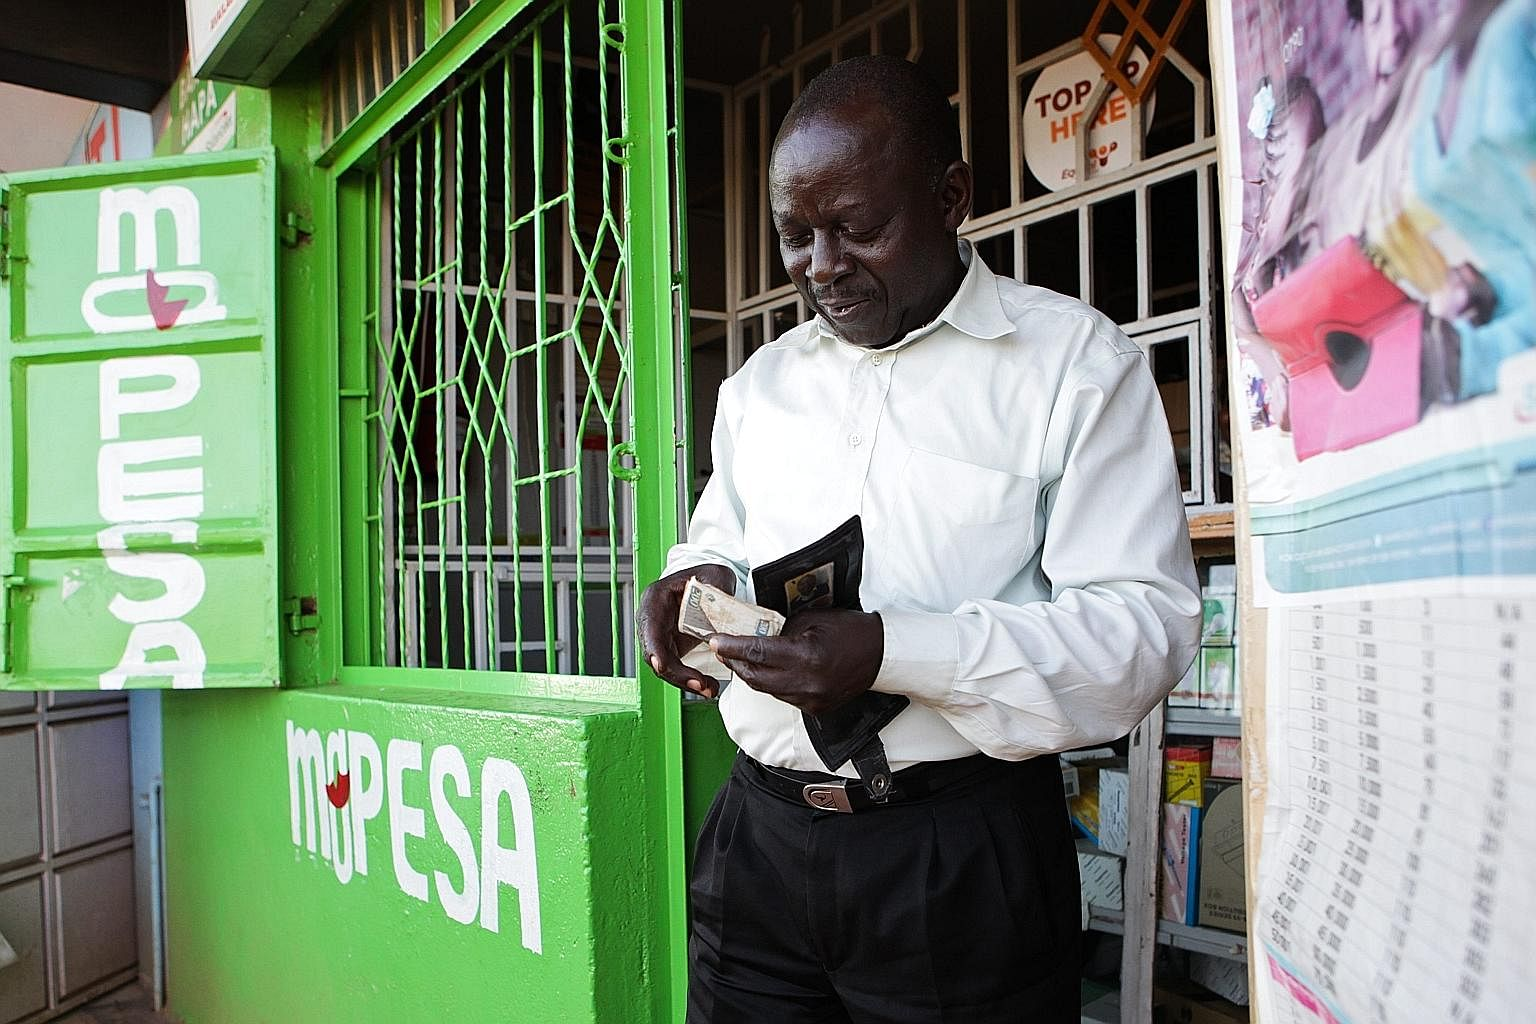 A Kenyan man counting his cash after making a withdrawal with his mobile phone at an M-Pesa outlet in Nairobi. M-Pesa is a mobile money transfer platform offered by mobile network operator Safaricom. Starting with payments, tech companies have moved